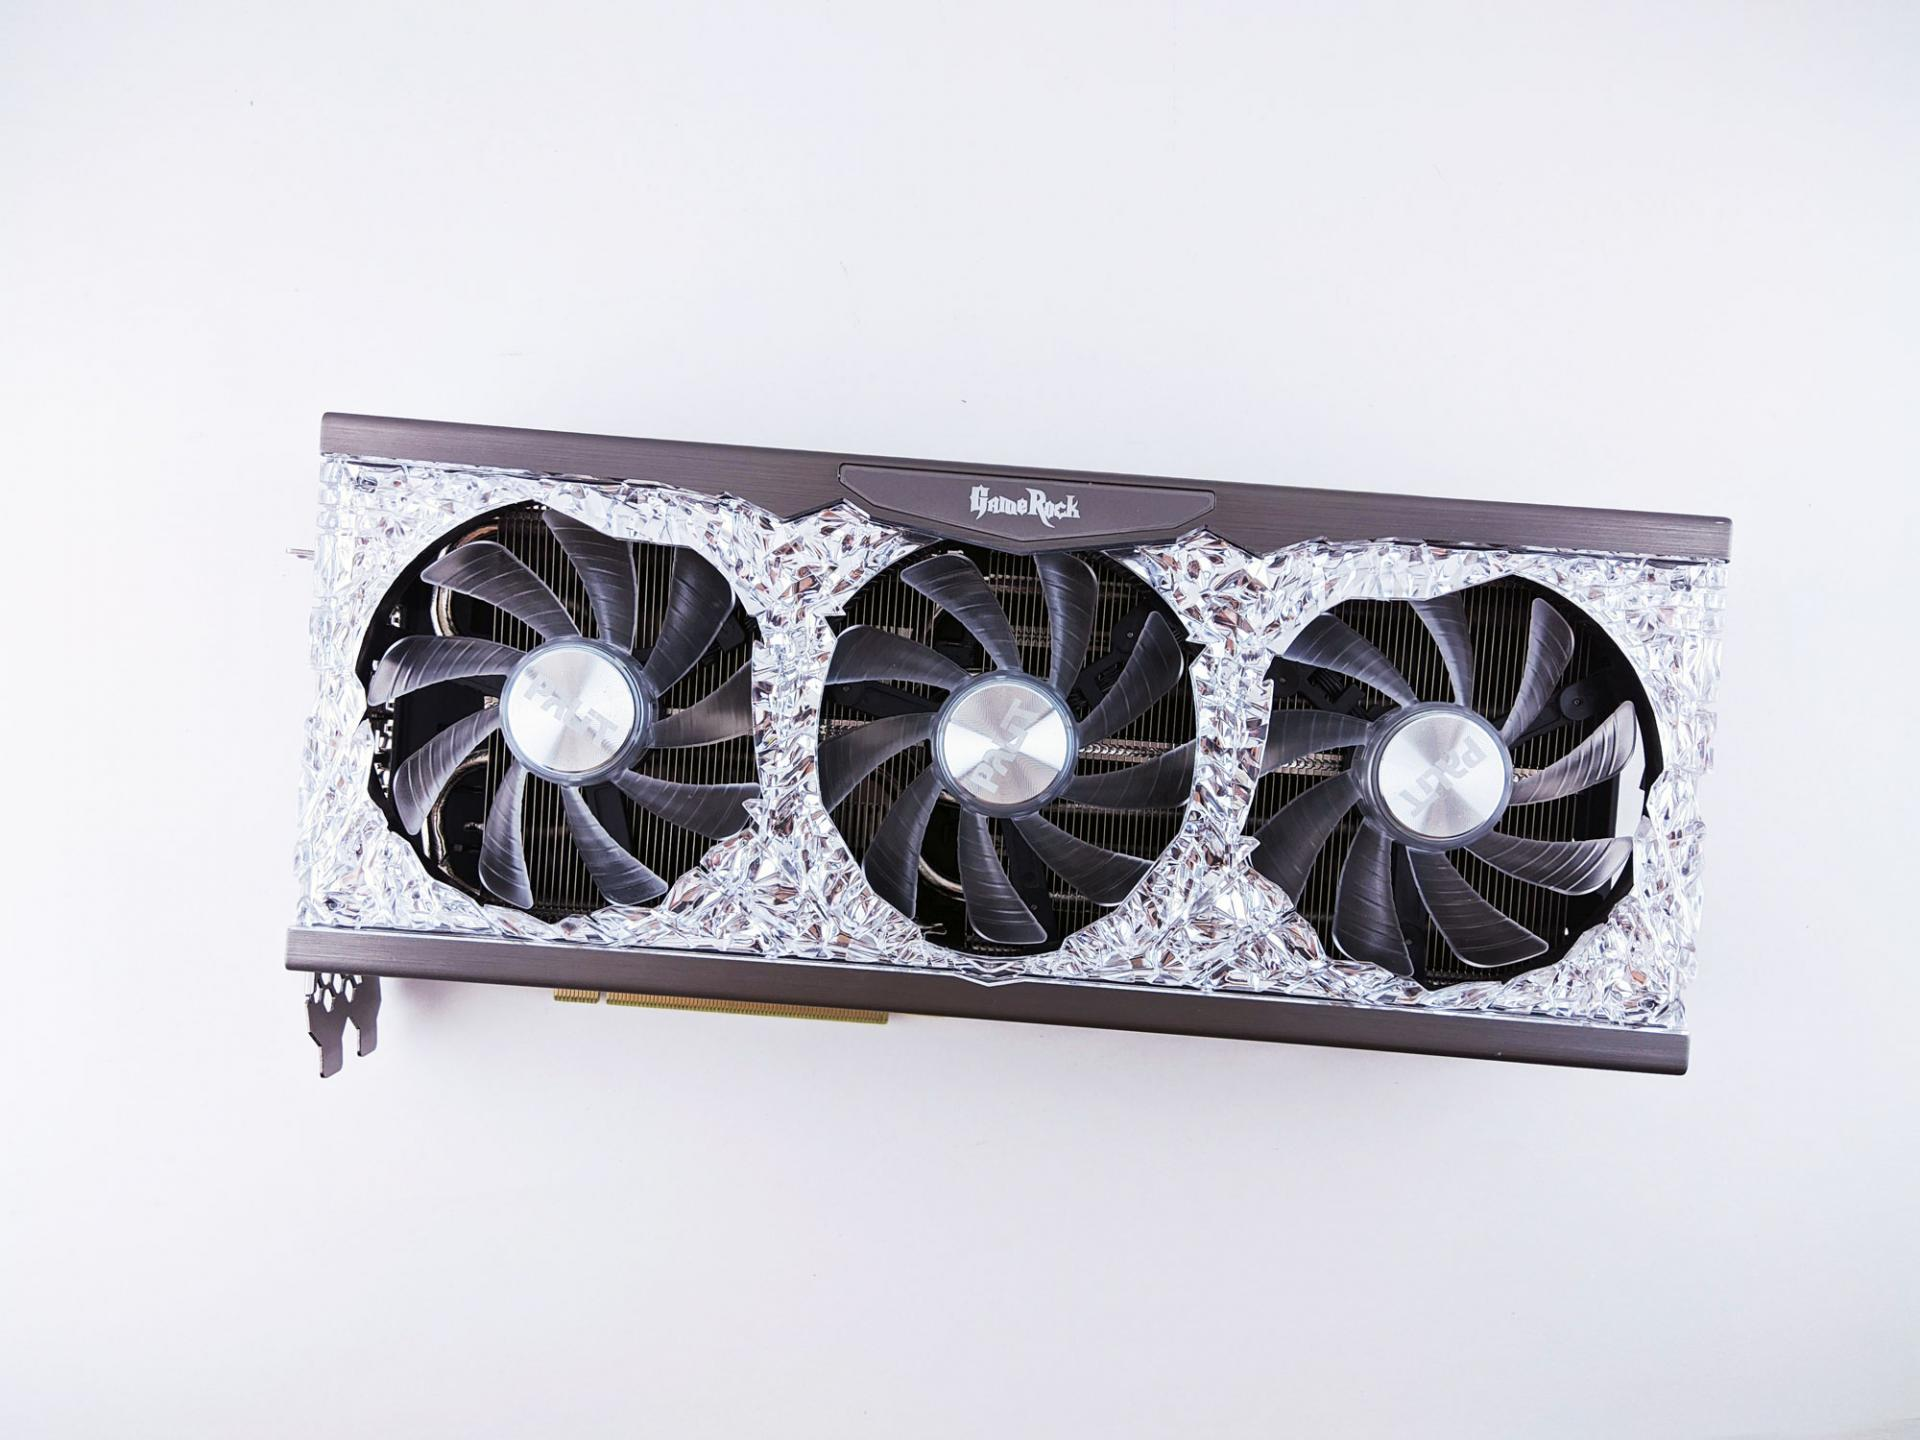 Тест-драйв видеокарты Palit GeForce RTX 3070 GameRock OC